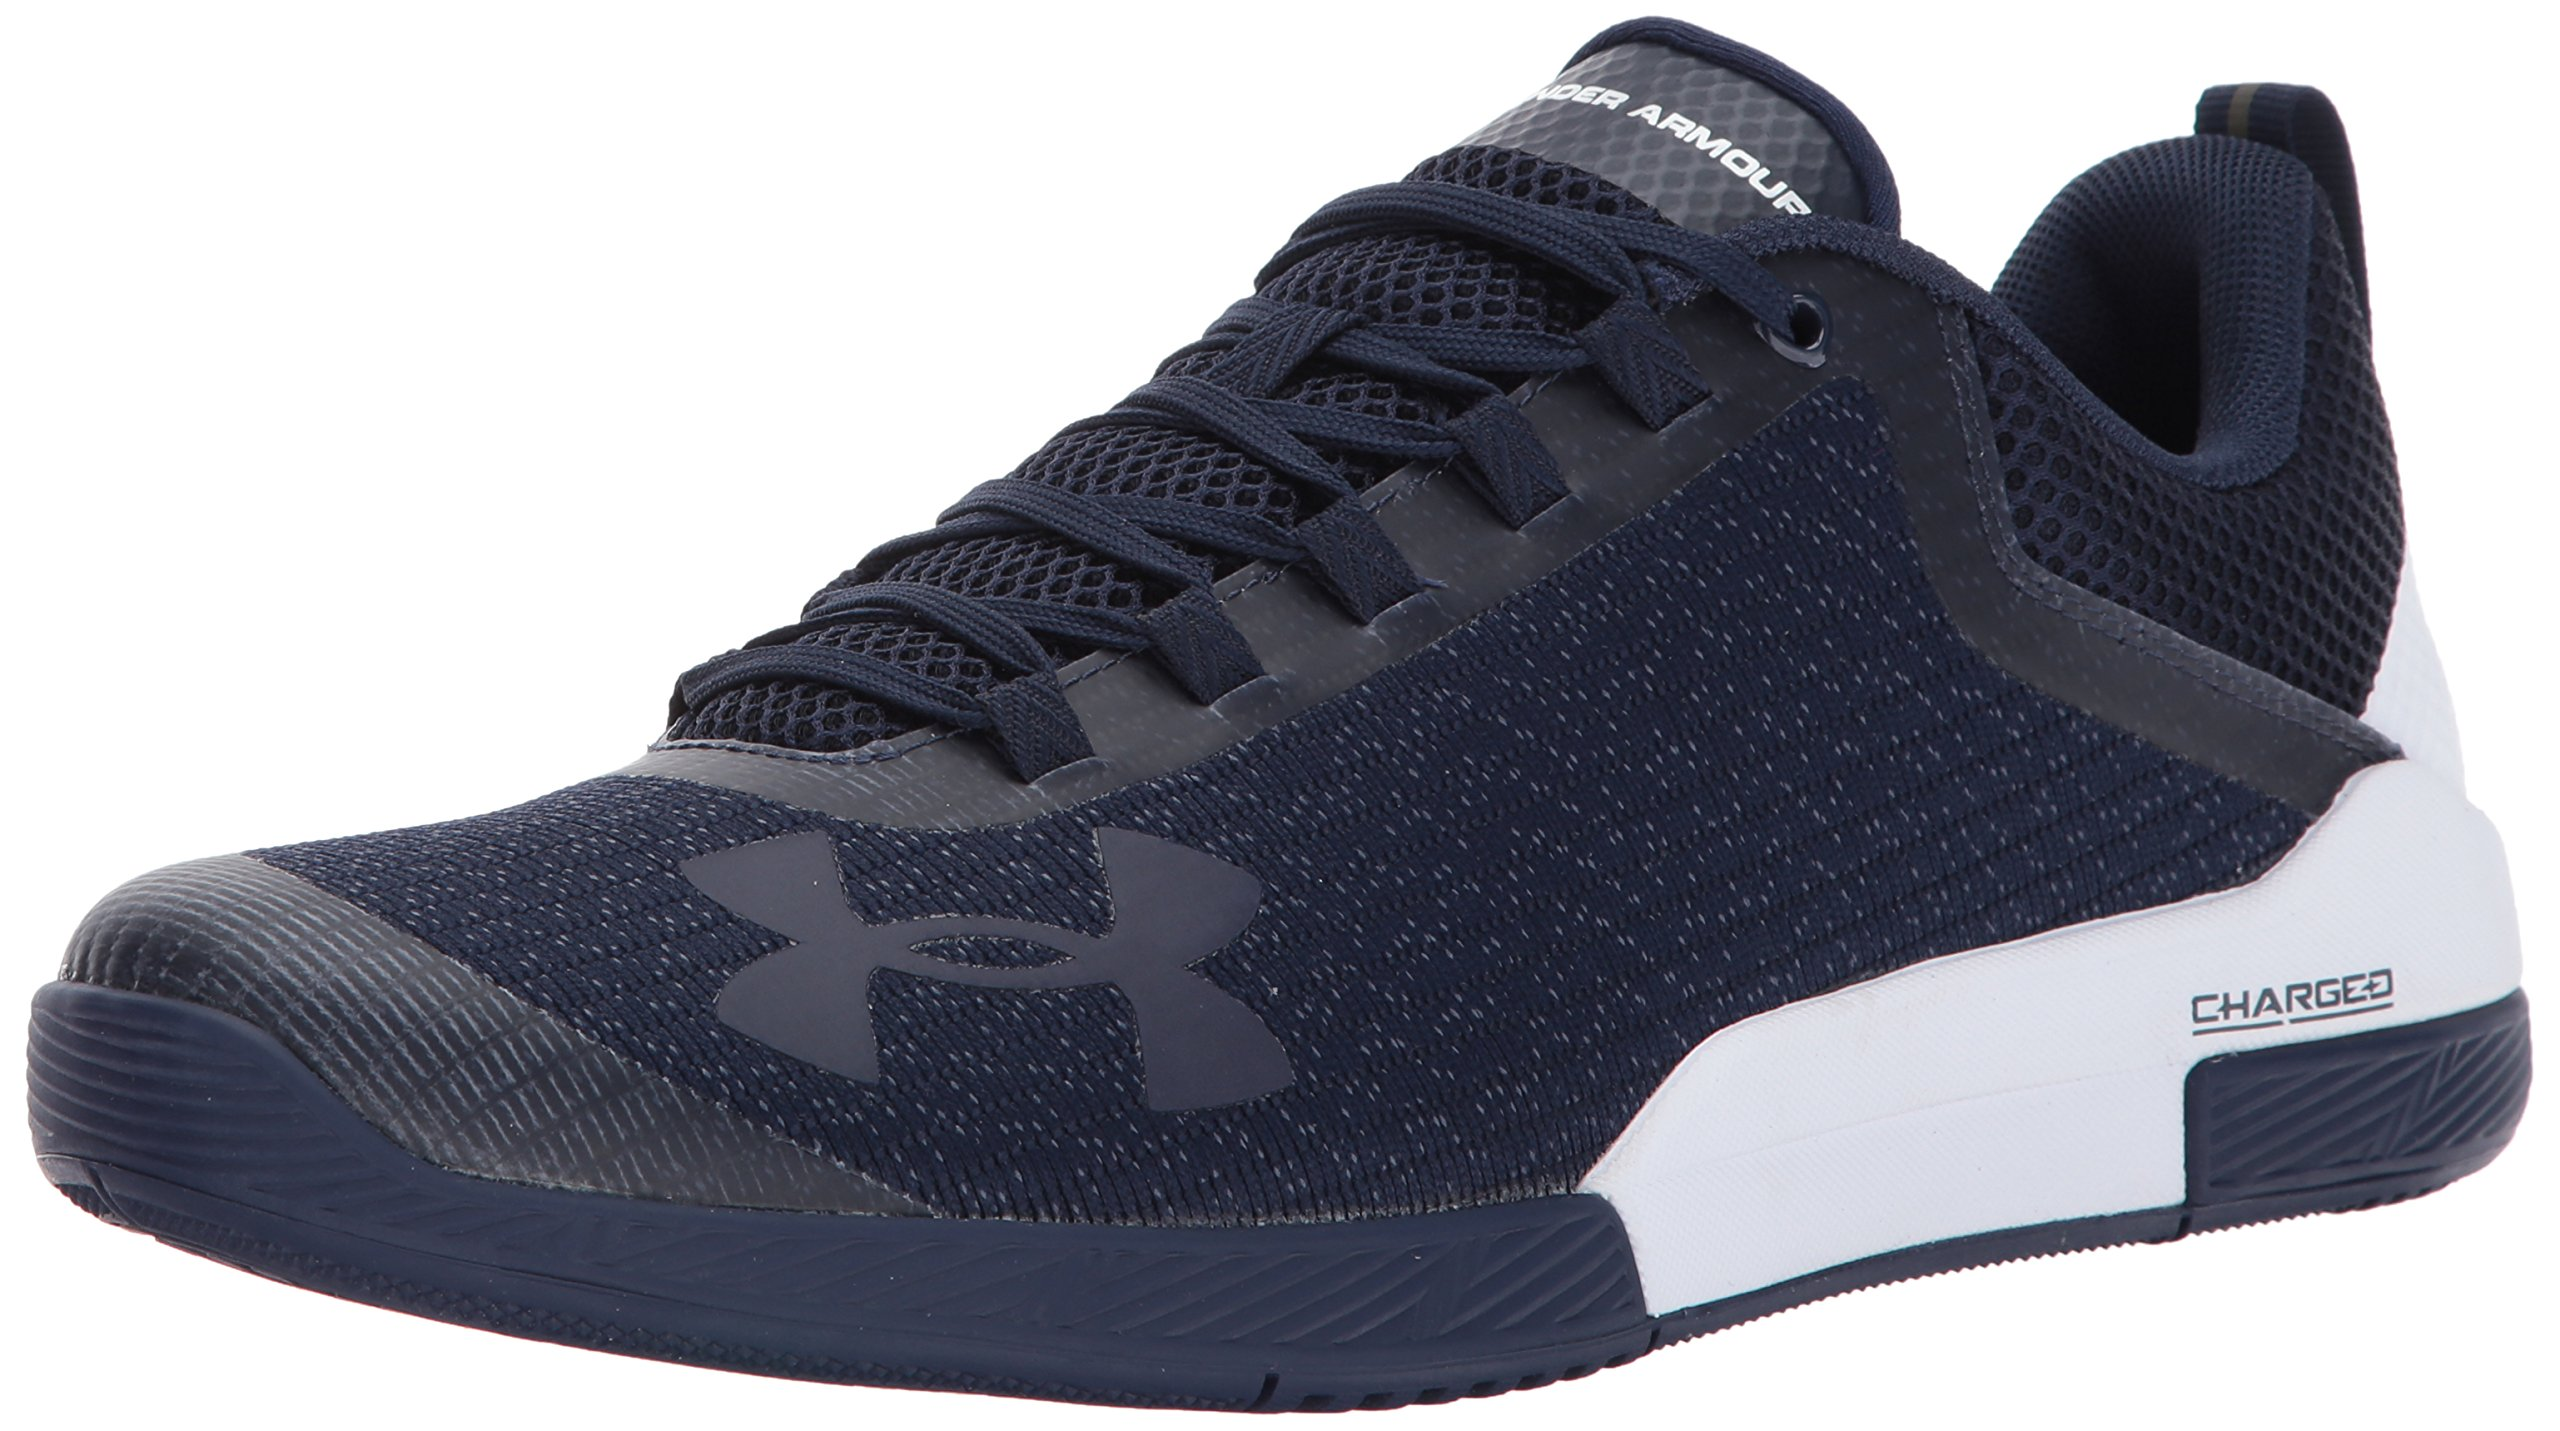 Under Armour Men's Charged Legend Sneaker, Midnight Navy (410)/White, 11